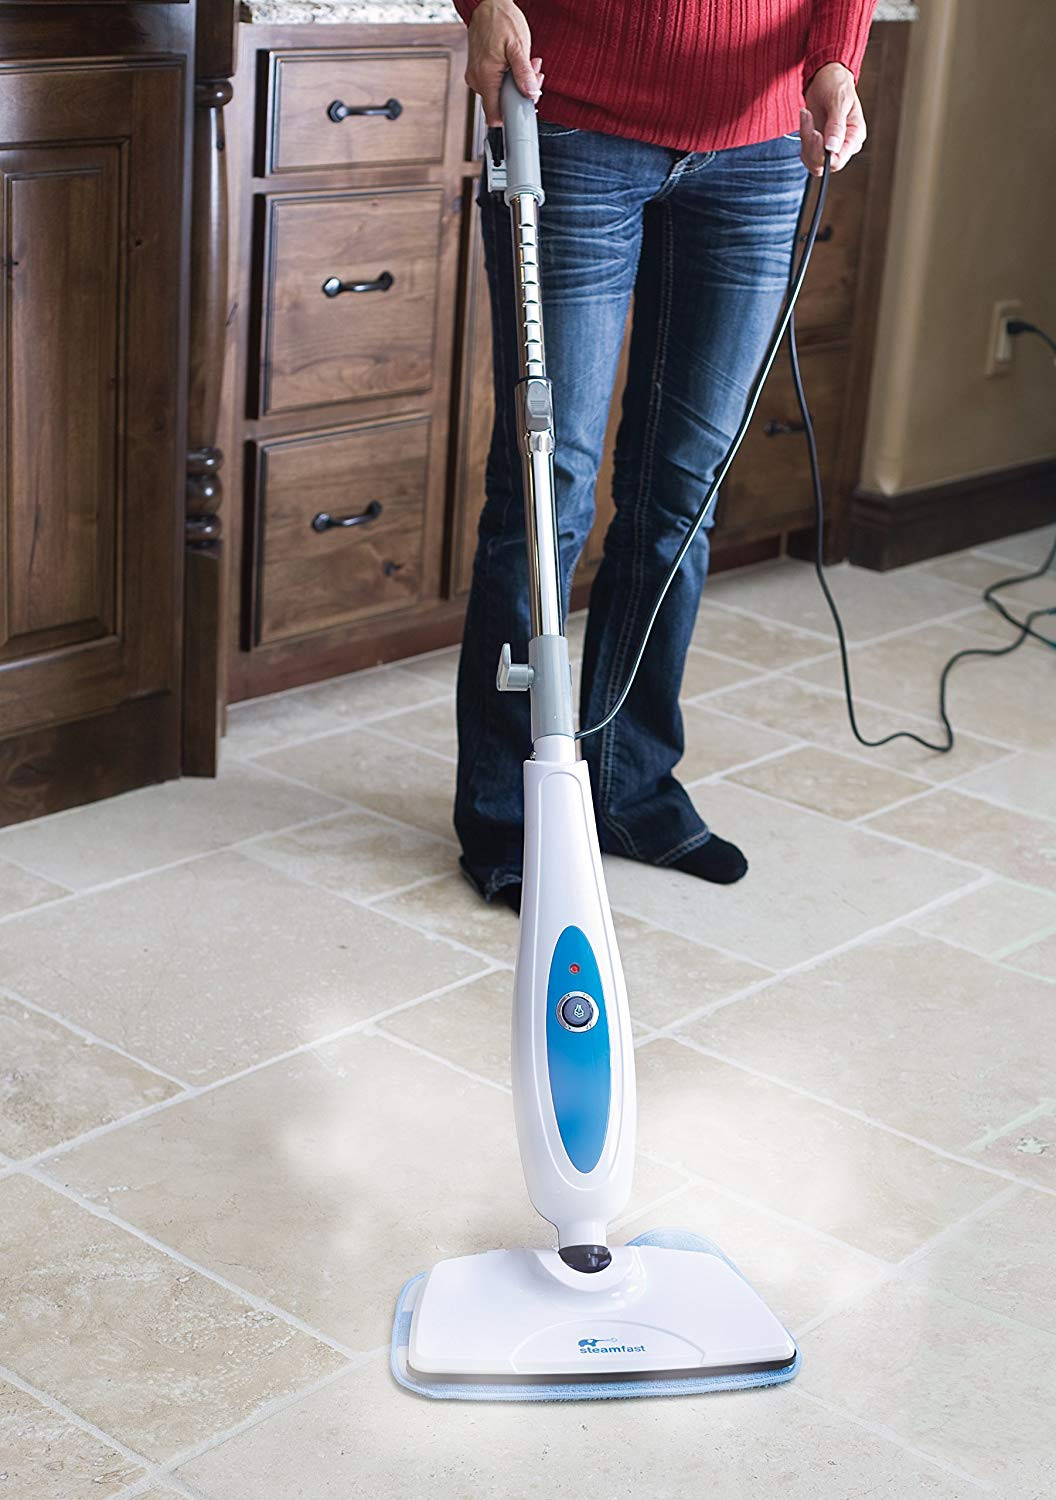 steam cleaner for hardwood floors and carpet of amazon com steamfast sf 147wh everyday steam mop household steam intended for amazon com steamfast sf 147wh everyday steam mop household steam mops